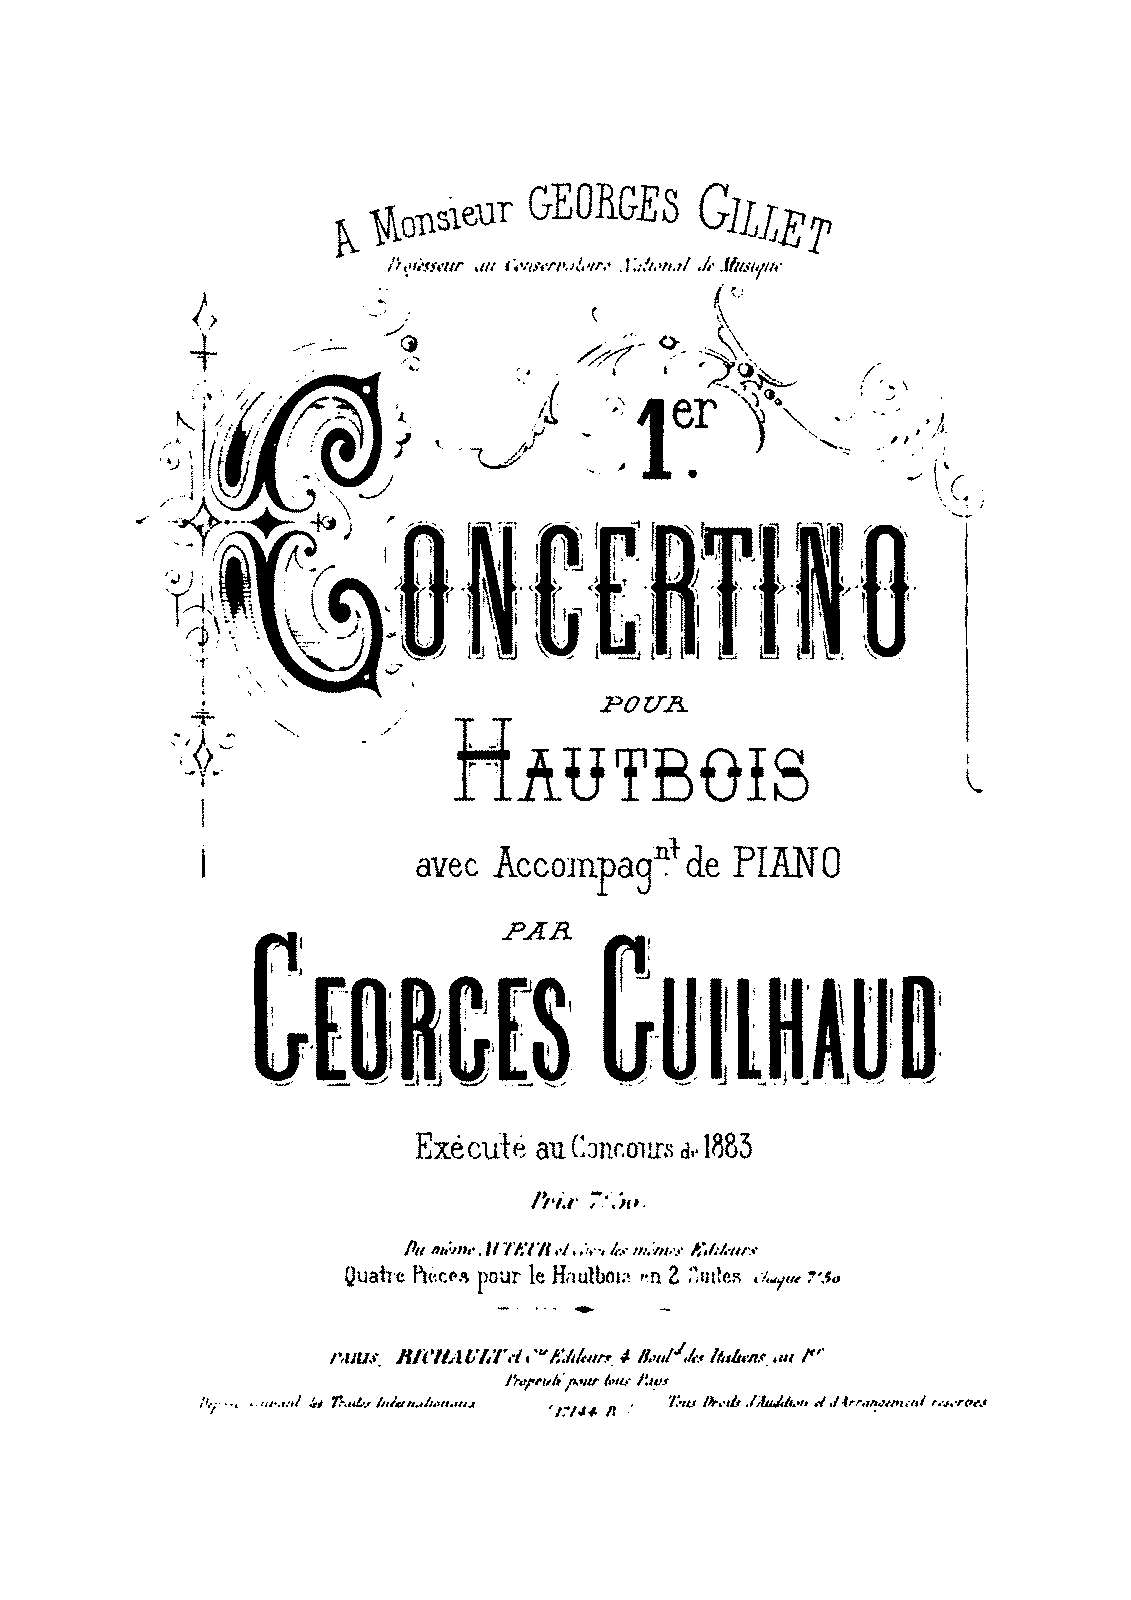 PMLP192141-Guilhaud - 1 Concertino for Oboe.pdf